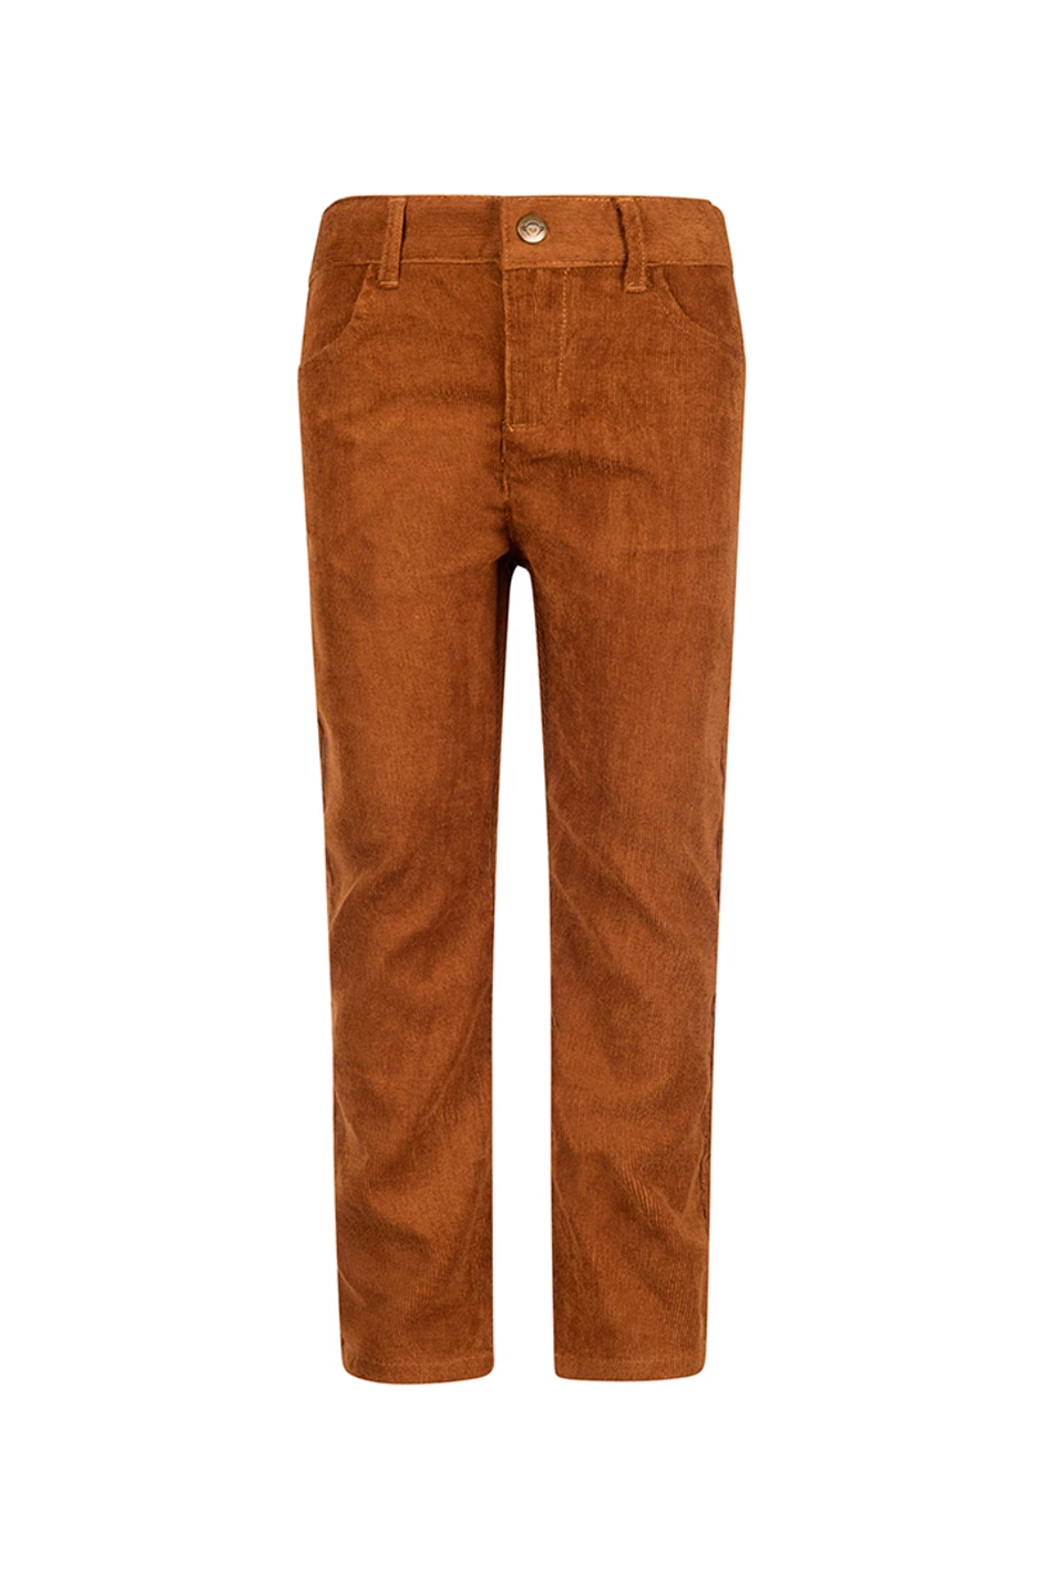 Appaman Skinny Cords - Ginger - Front Cropped Image